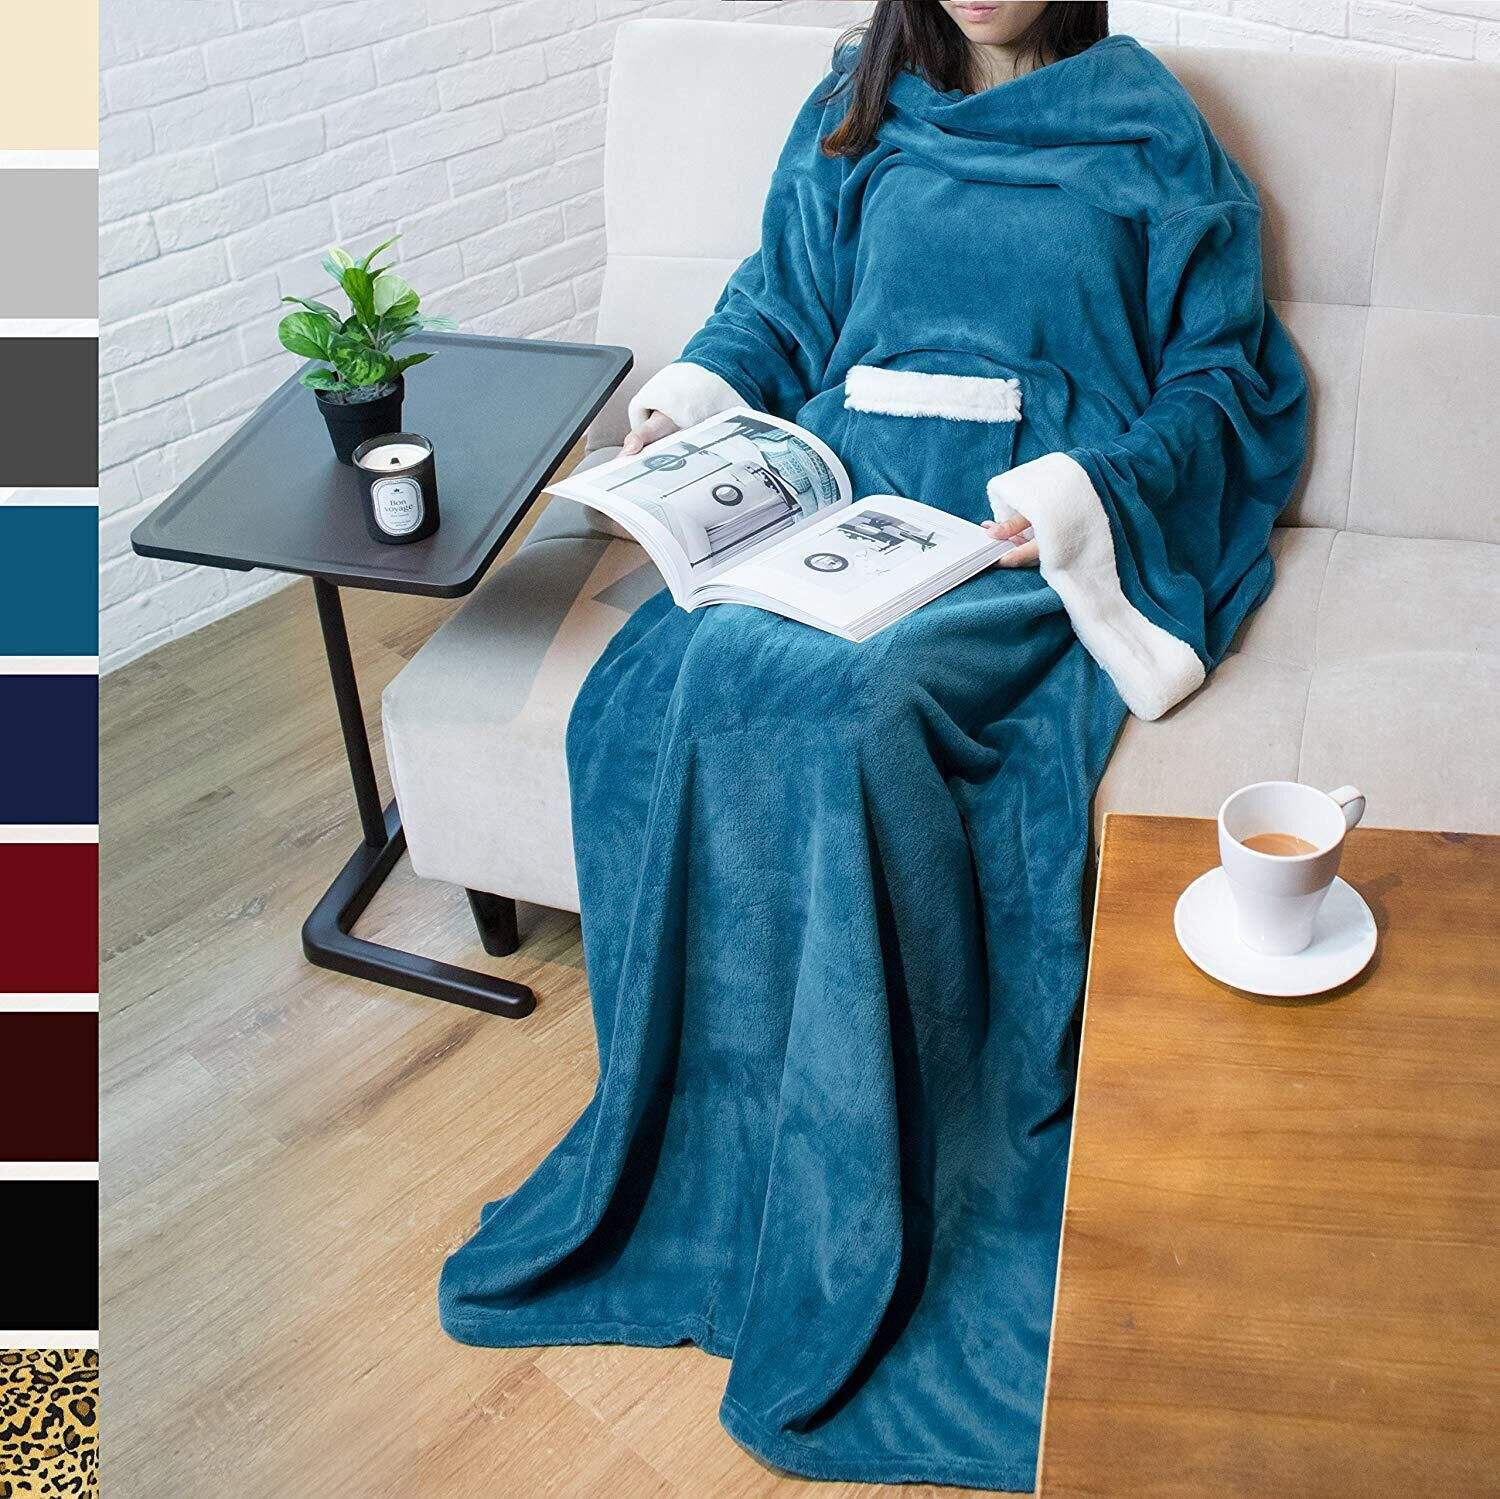 Wearable Blanket with Sleeves Arms Super Soft Warm Comfy Large Fleece Plush Sleeved TV Throws Wrap Robe Blanket for Adult Women